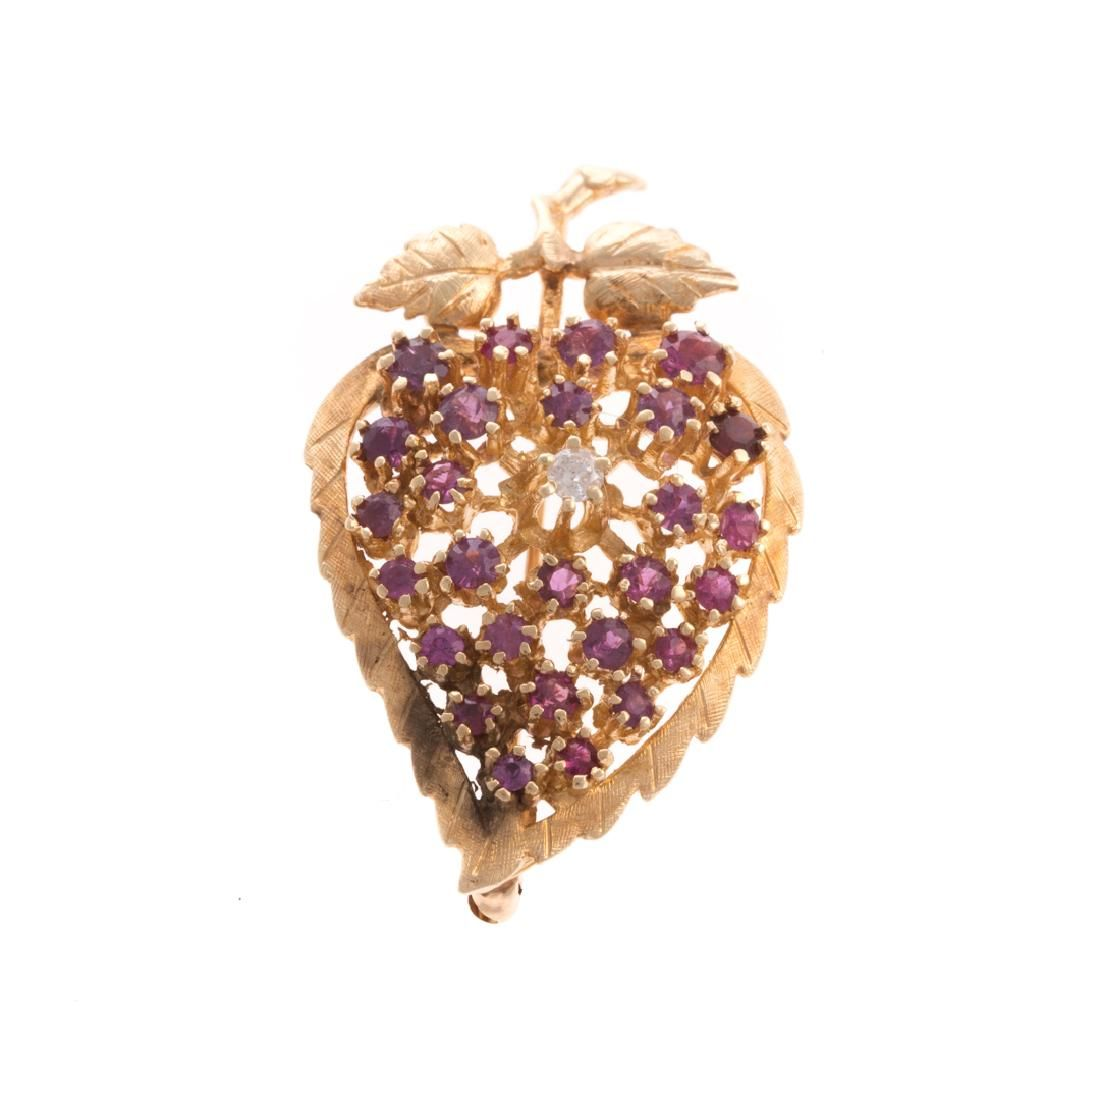 A Lady's Ruby and Diamond Brooch in 14K Gold